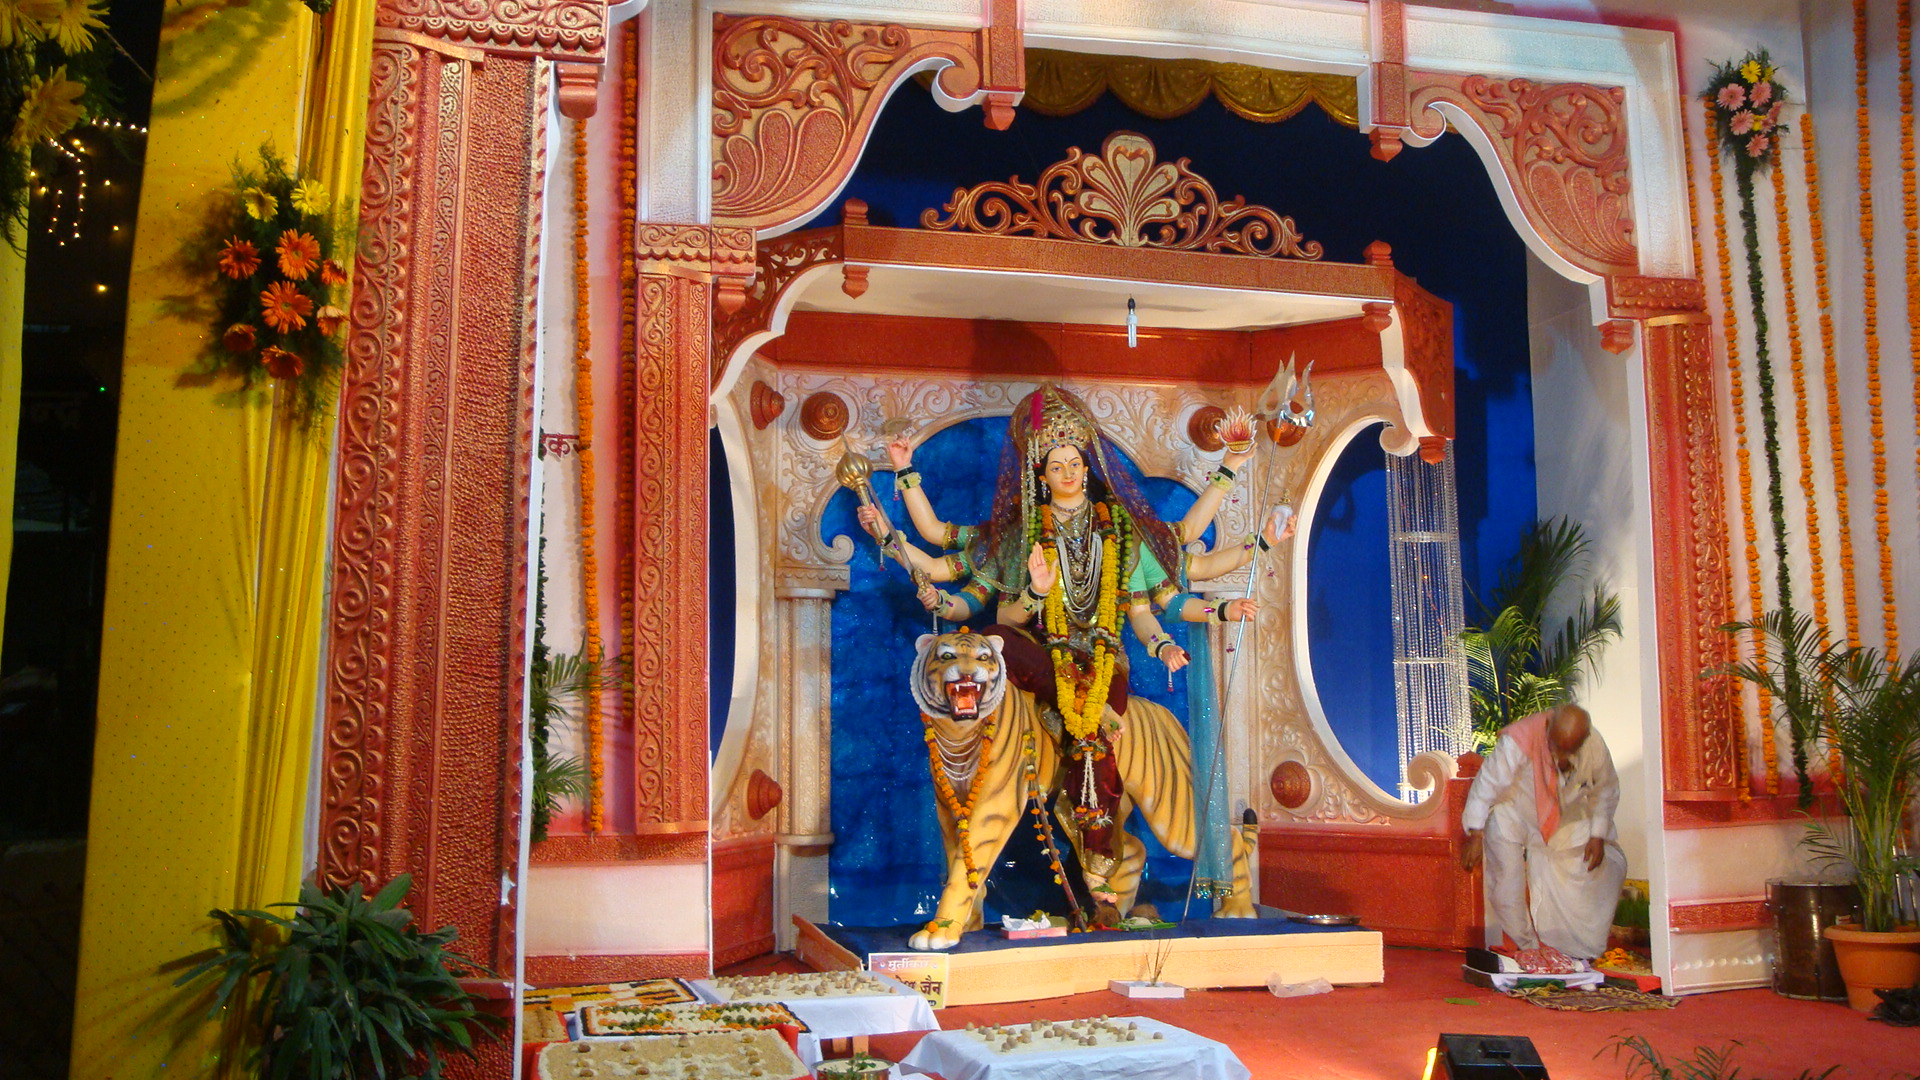 Navratri durga puja navratri decoration navratri for Home decorations 2015